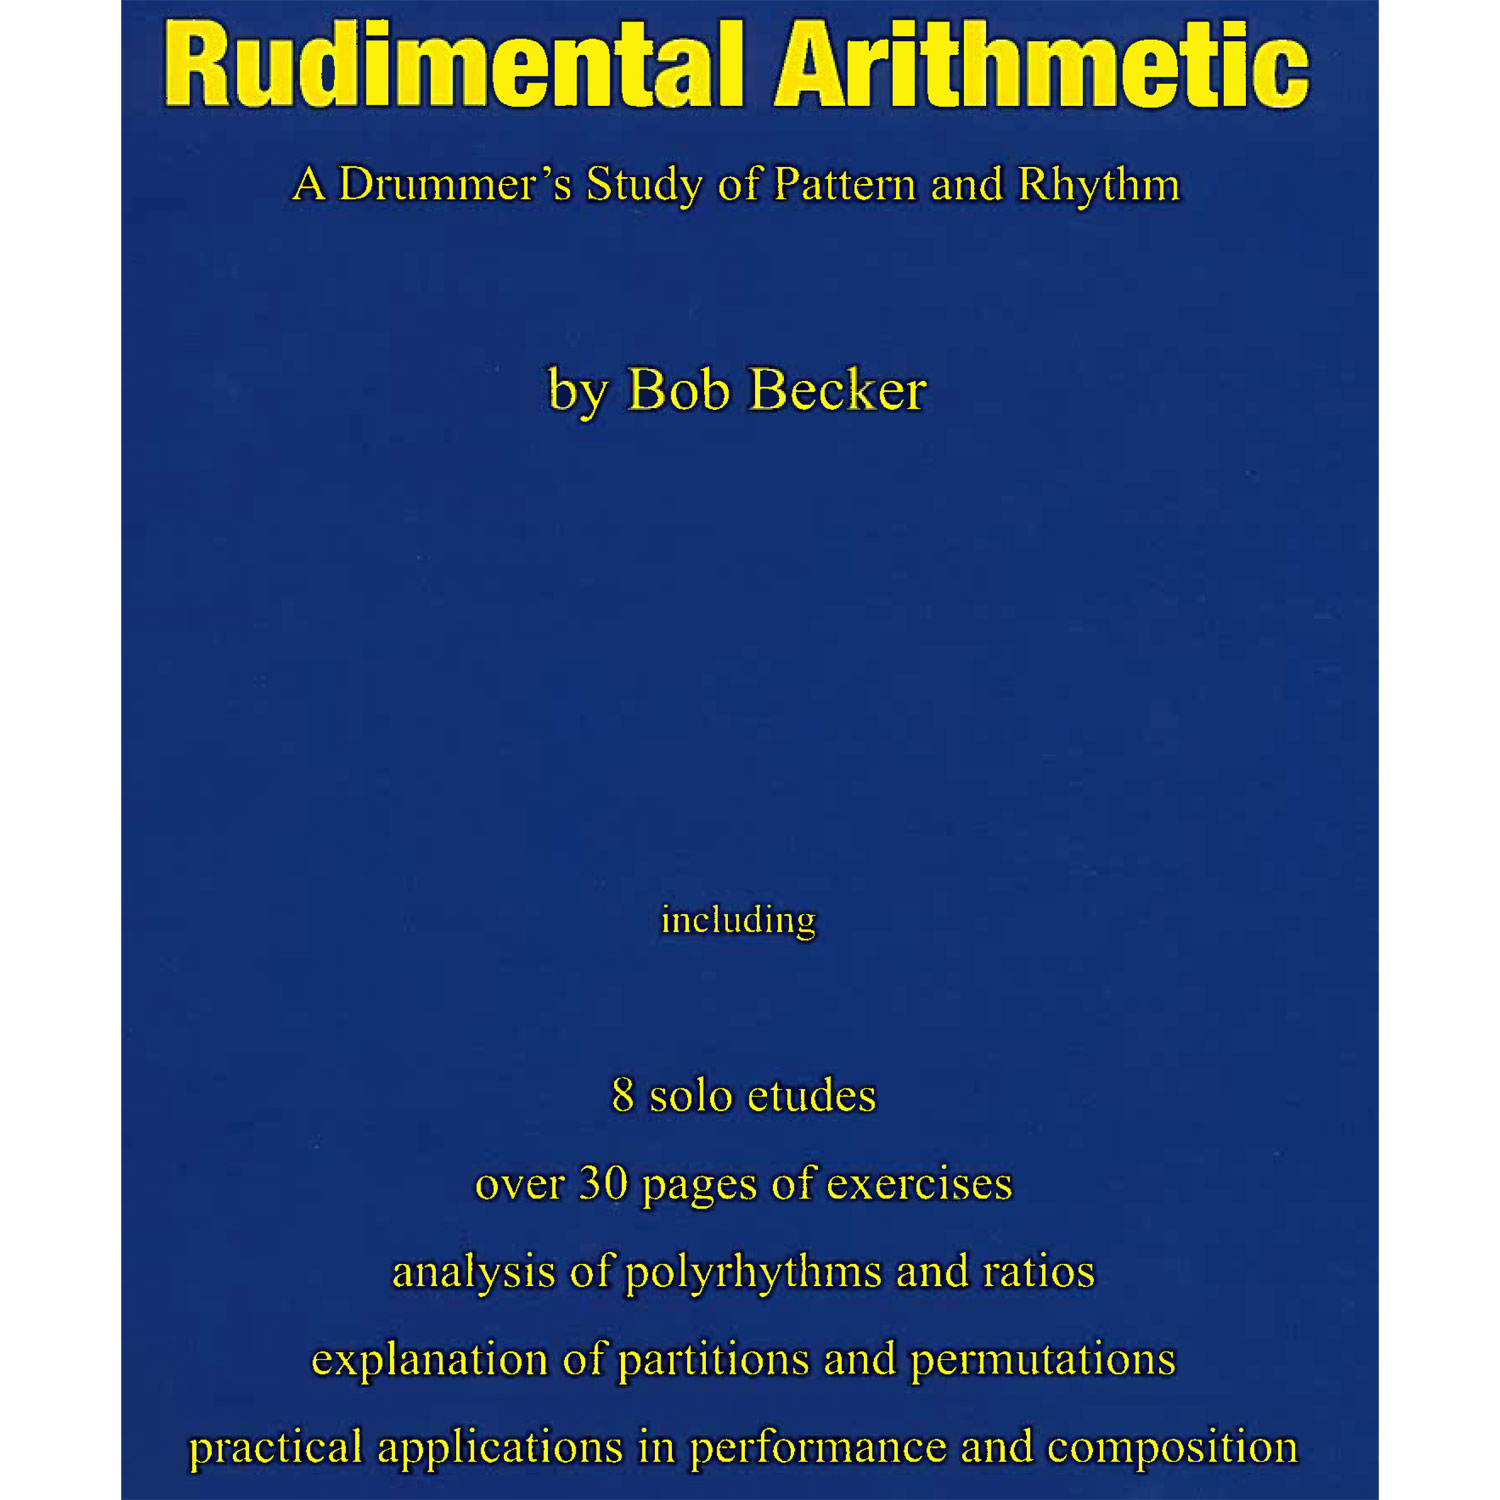 Rudimental Arithmetic by Bob Becker